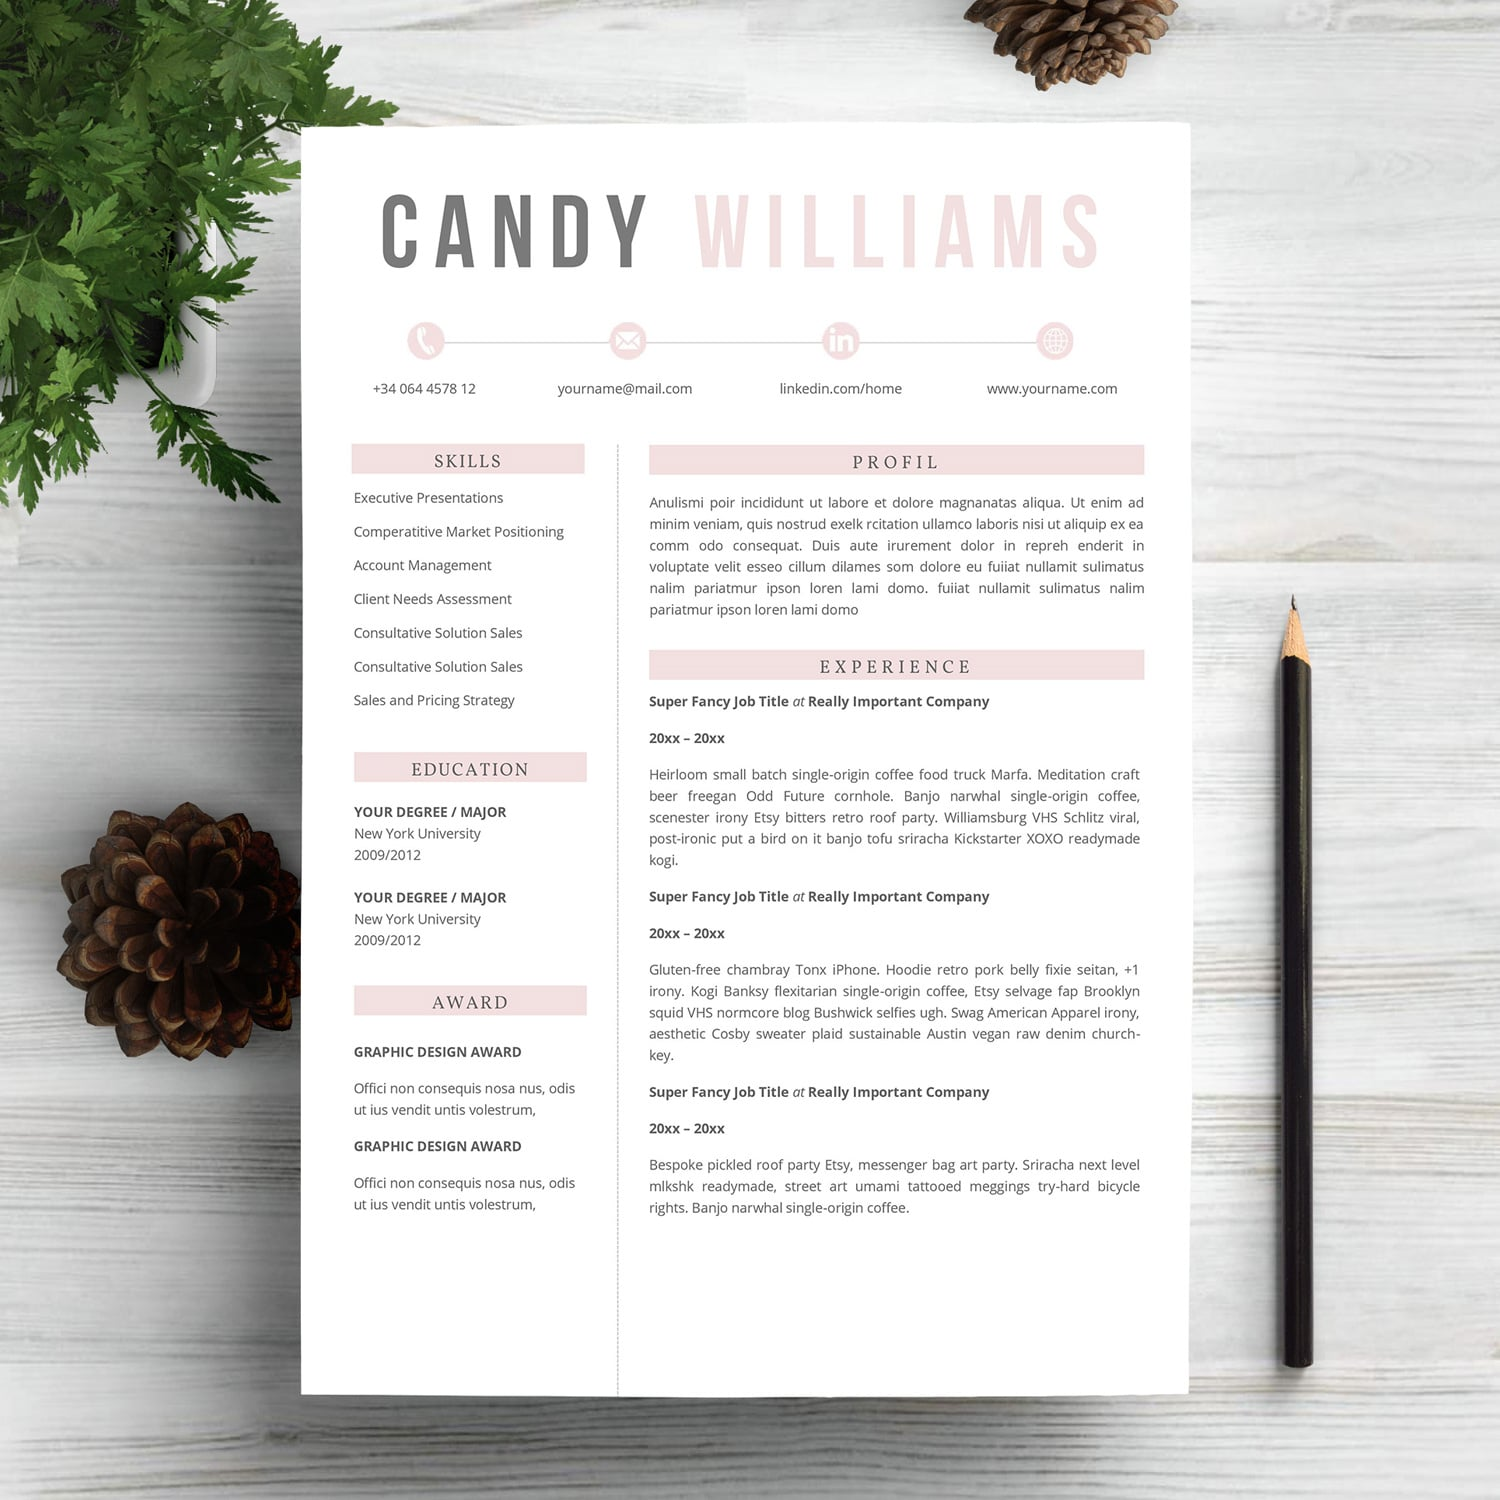 6 Best Clean Resume CV Templates in 2020 - page 1 2